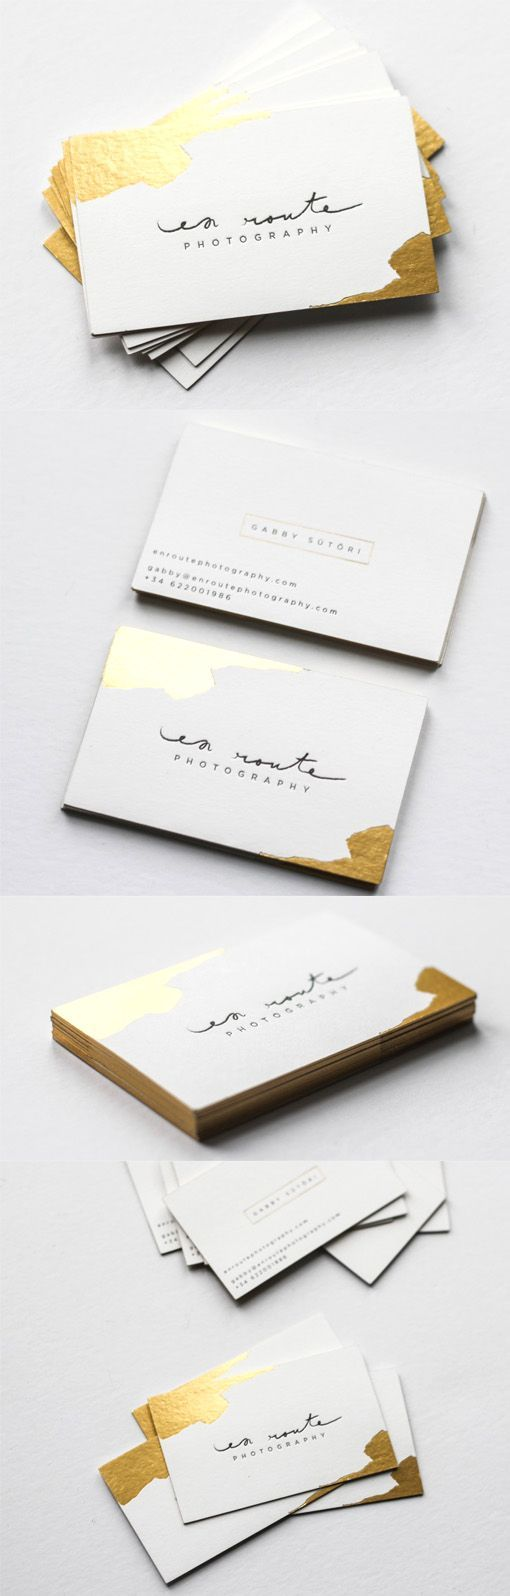 Best 25+ Photography business cards ideas on Pinterest | Gold foil ...